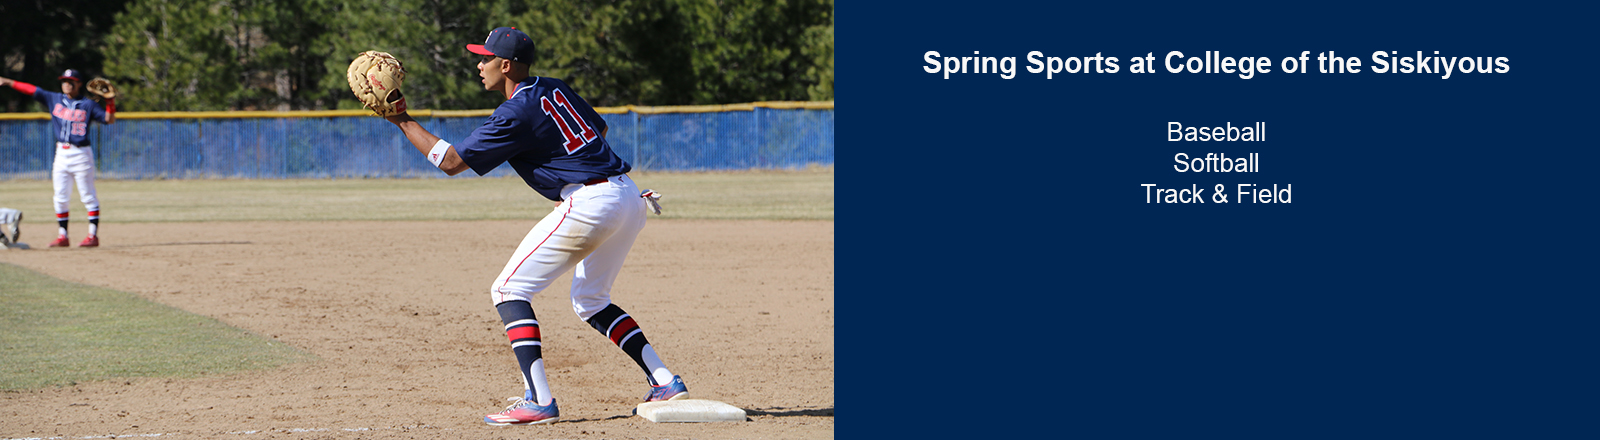 Spring Sports at College of the Siskiyous - Baseball, Softball, Track and Field